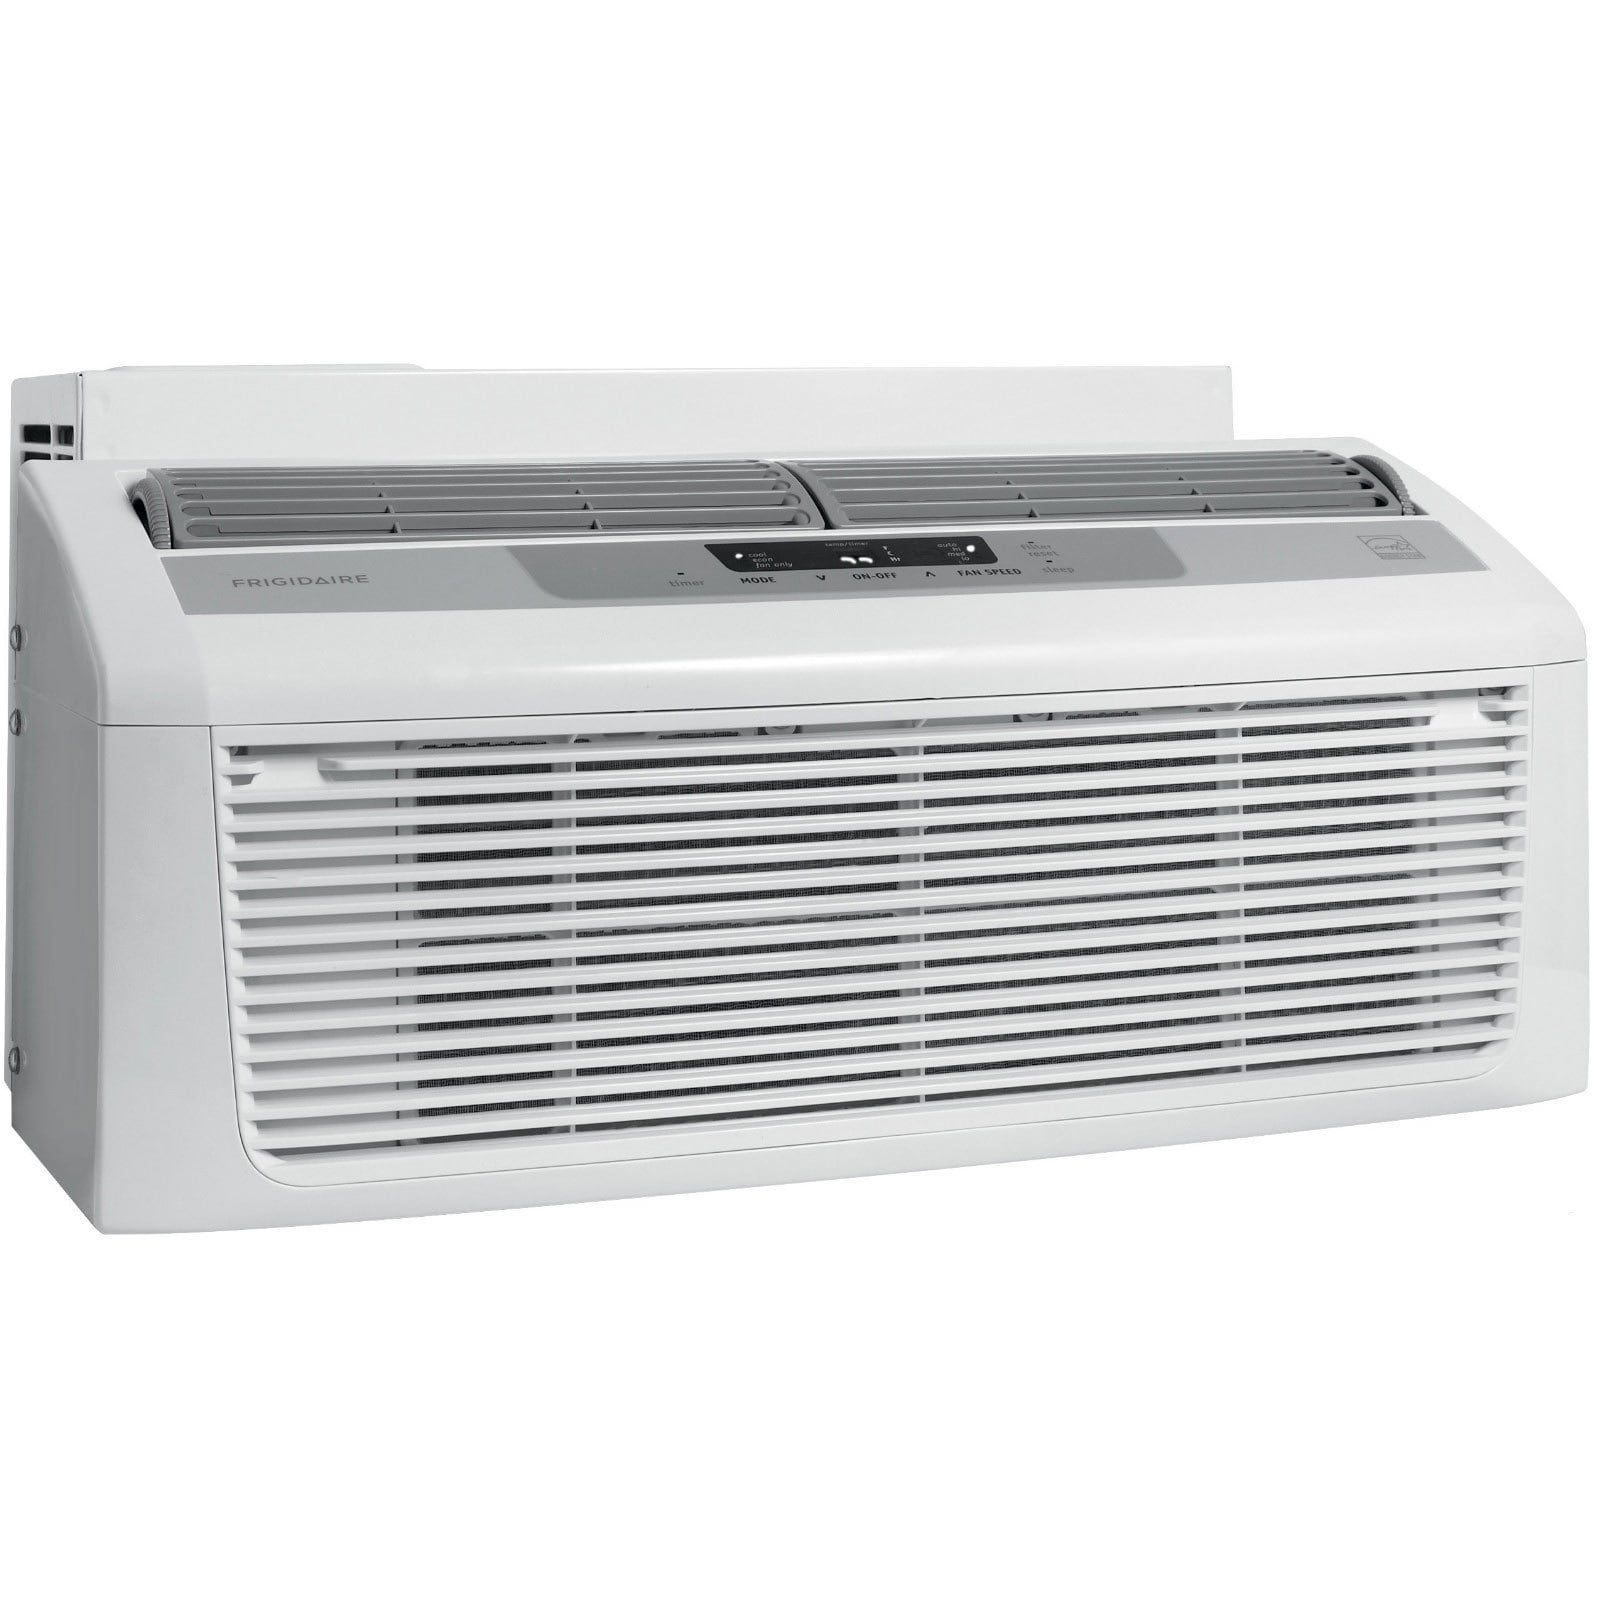 Window Air Conditioner Overstock Shopping Big Discounts on Air #626969